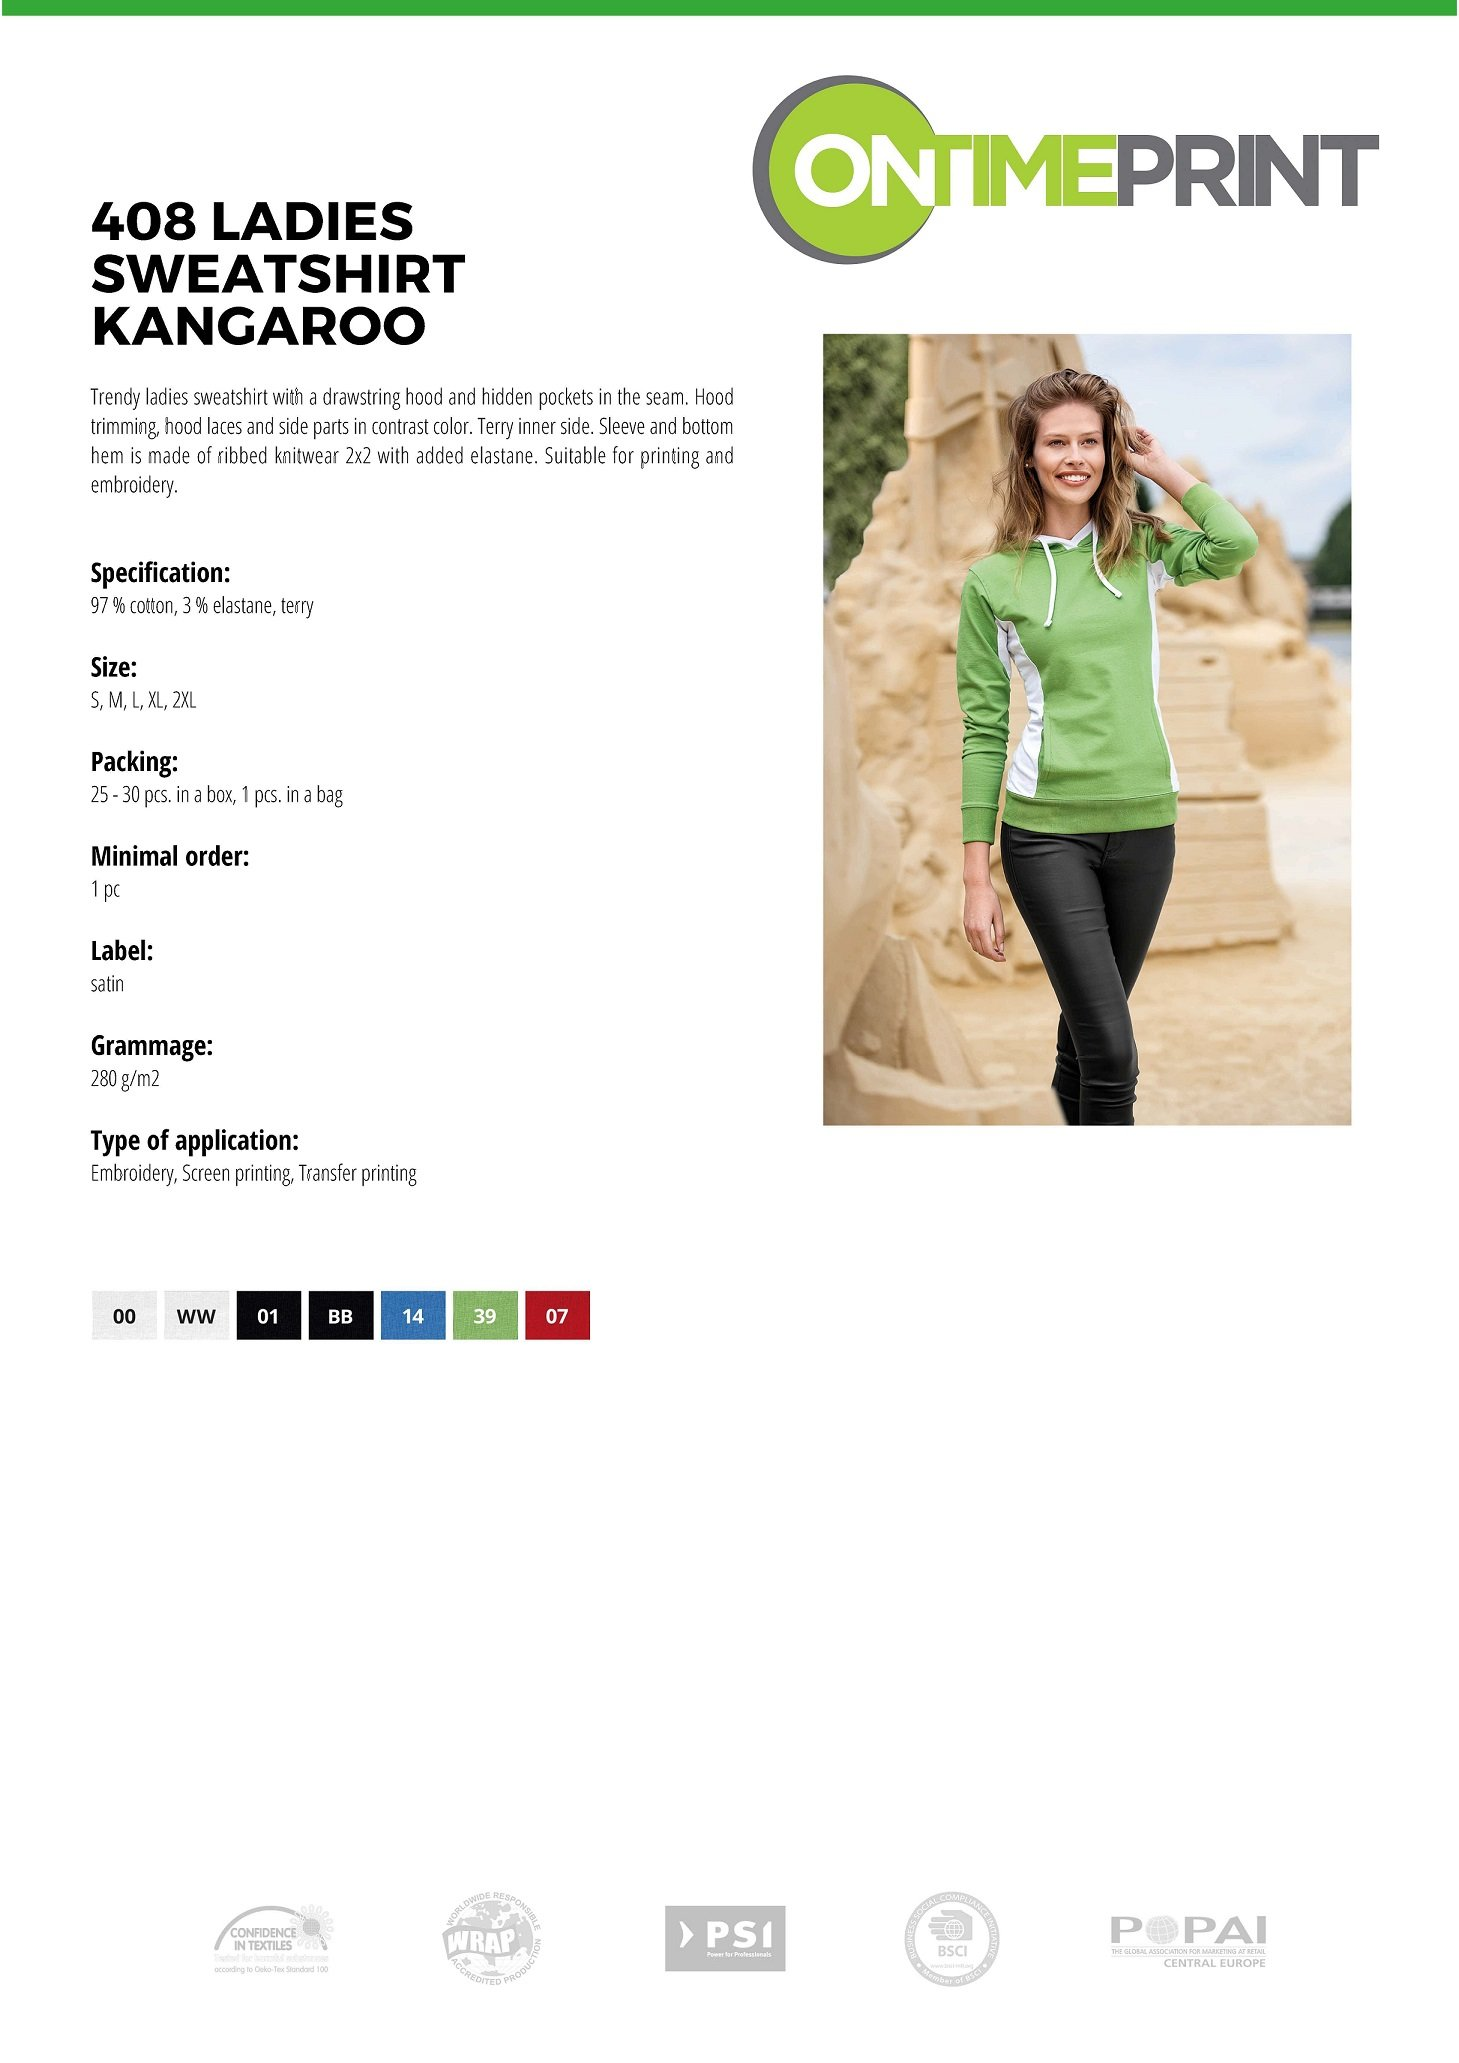 Ladies Hooded Sweatshirt Kangaroo 408